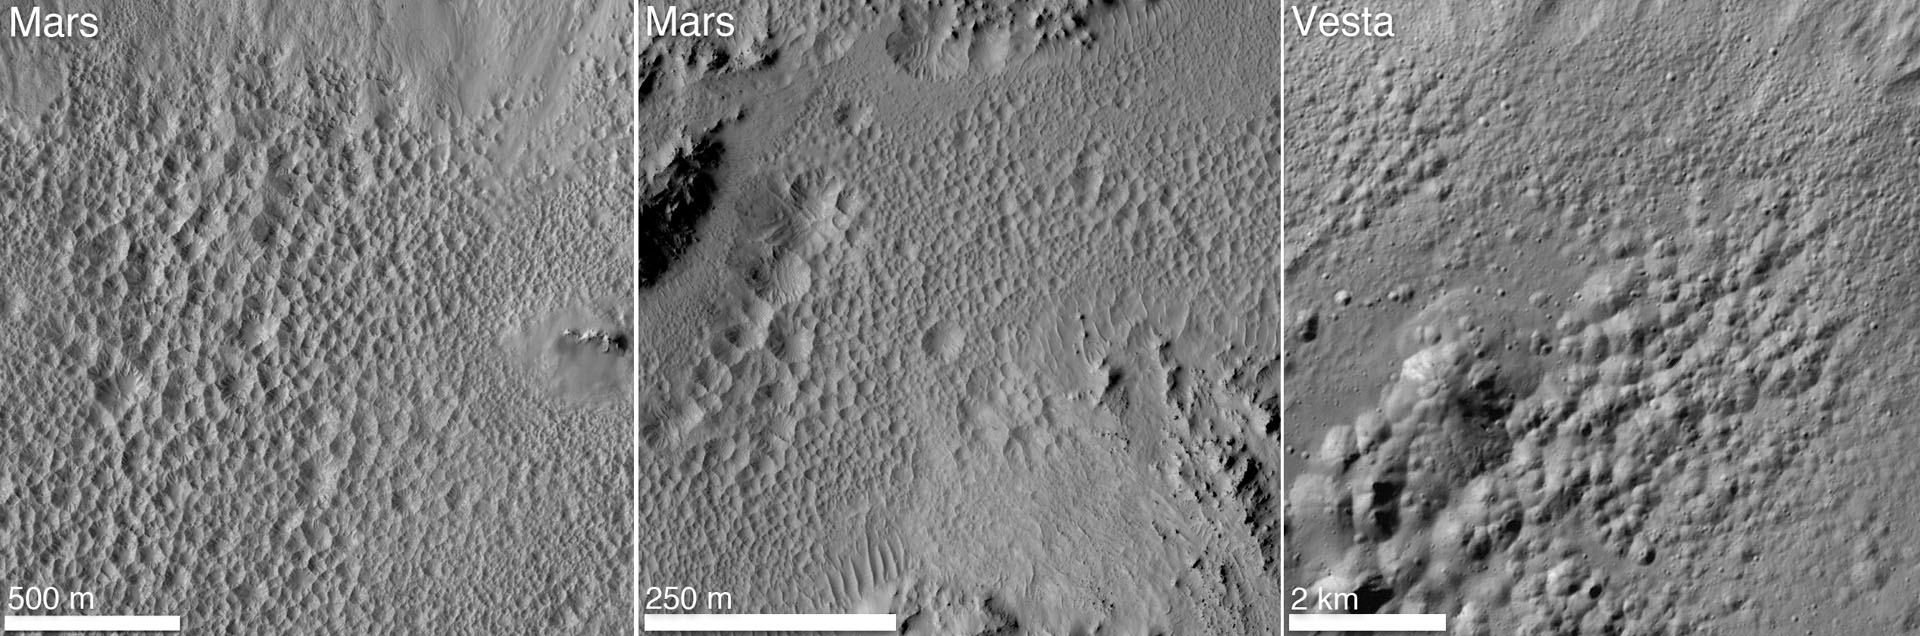 "A distinctive ""pitted terrain"" observed by NASA's Dawn mission on Vesta has also been seen on Mars. Image credit: NASA/JPL-Caltech/University of Arizona/MPS/DLR/IDA/JHUAPL"